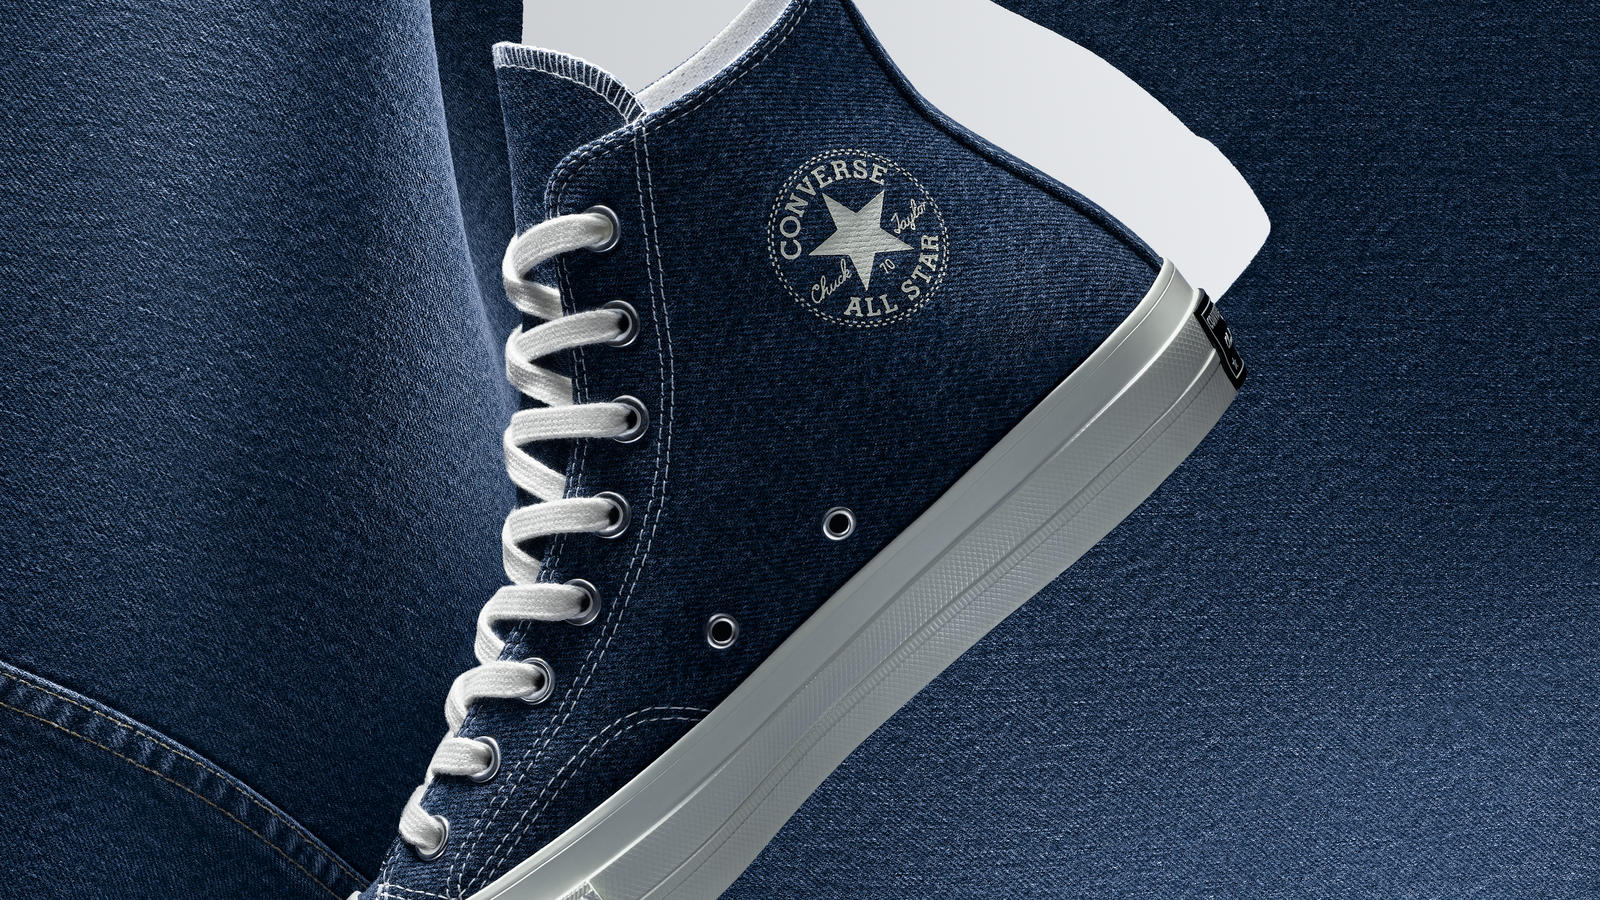 Converse Shows Denim Evolution With This Pair of 70s Chuck